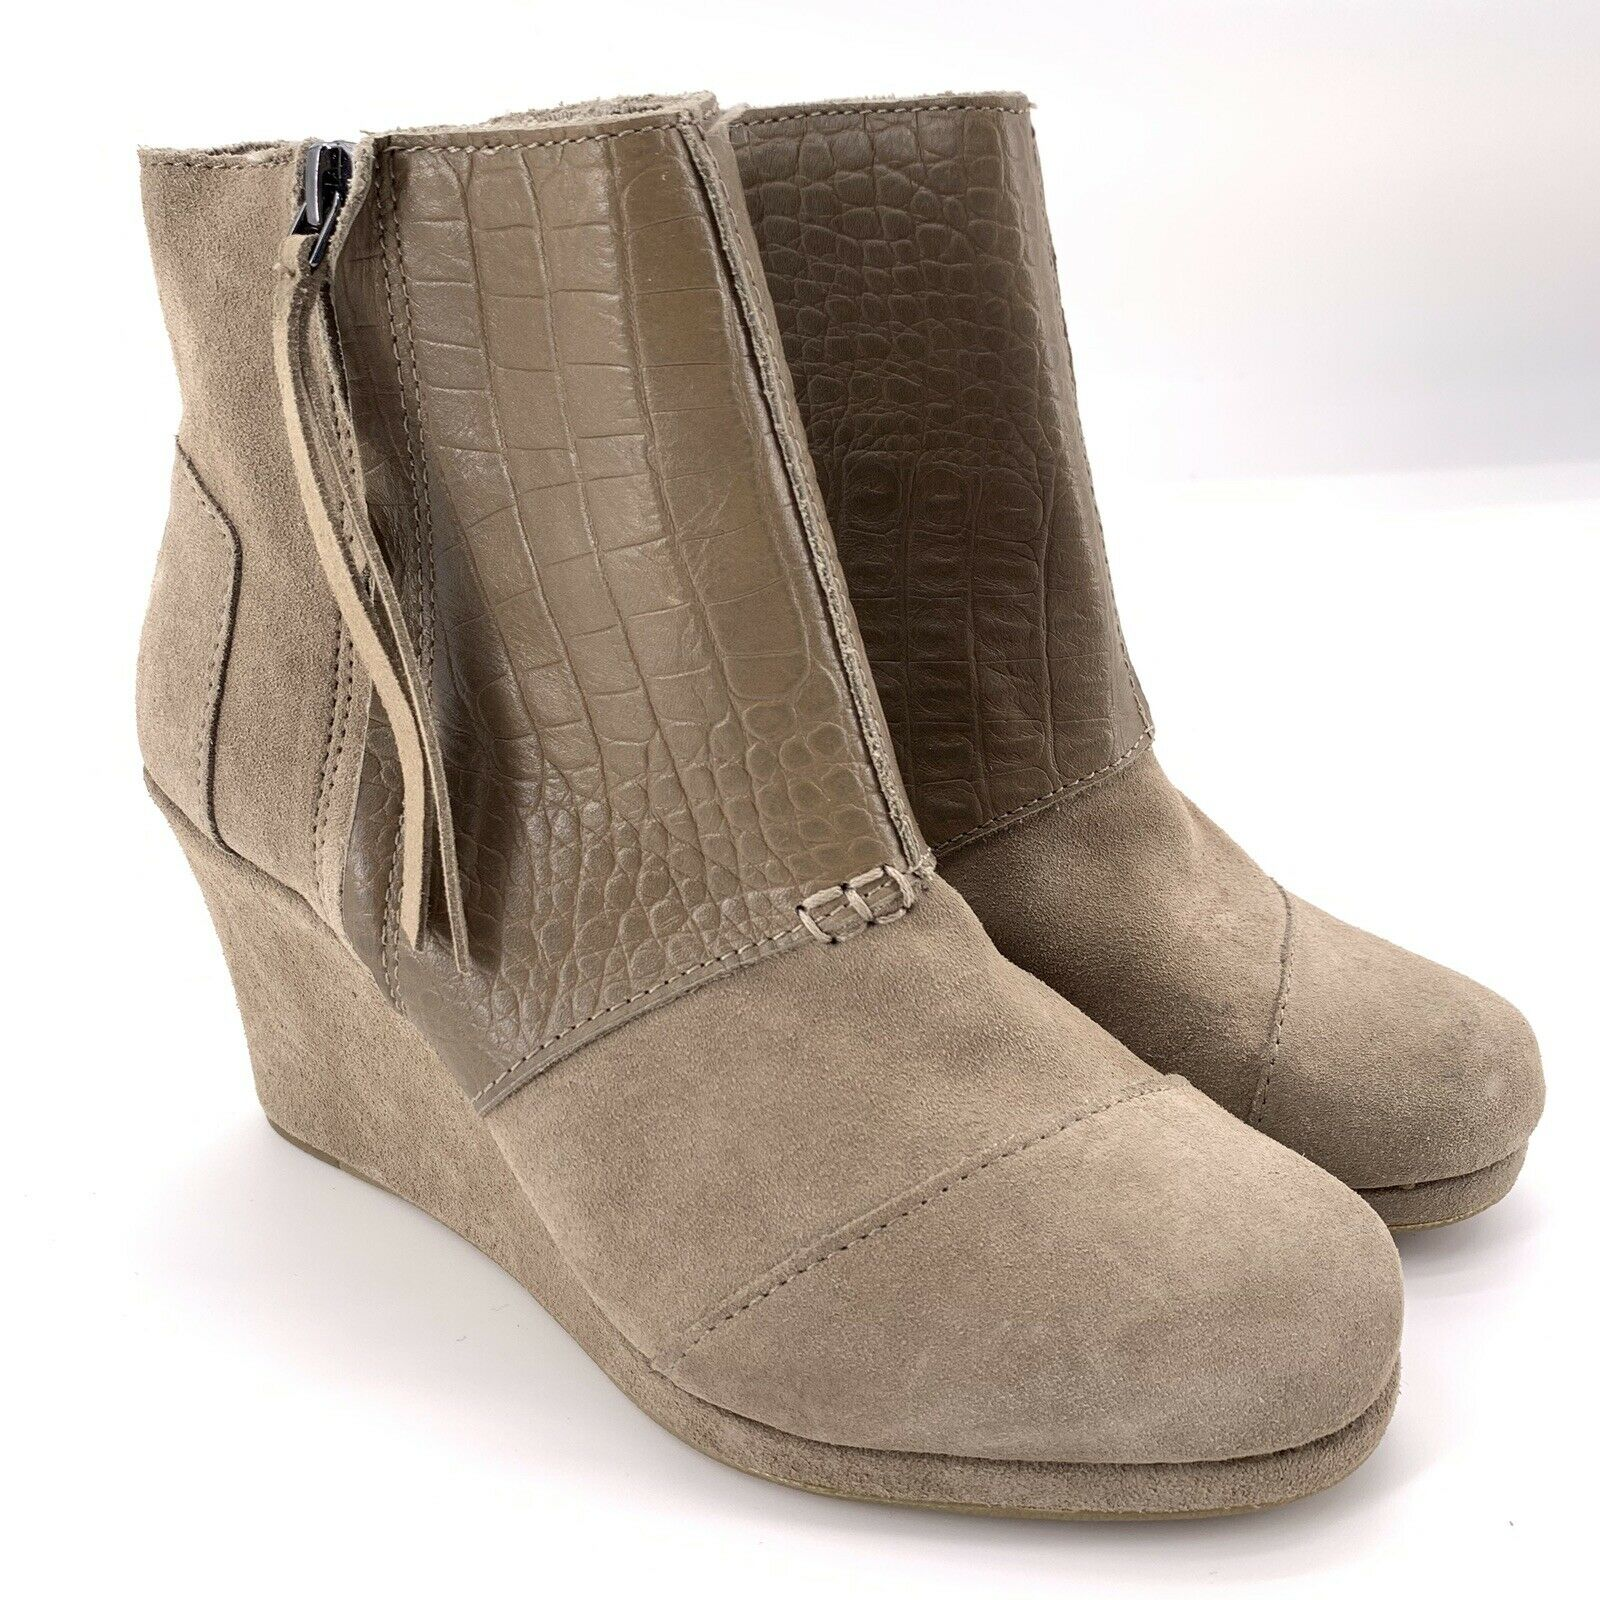 d10756e266f9 ... Size UPC 886468927031 product image for Toms Women s Desert Wedge High  Taupe Suede Croc Embossed Ankle Bootie ...